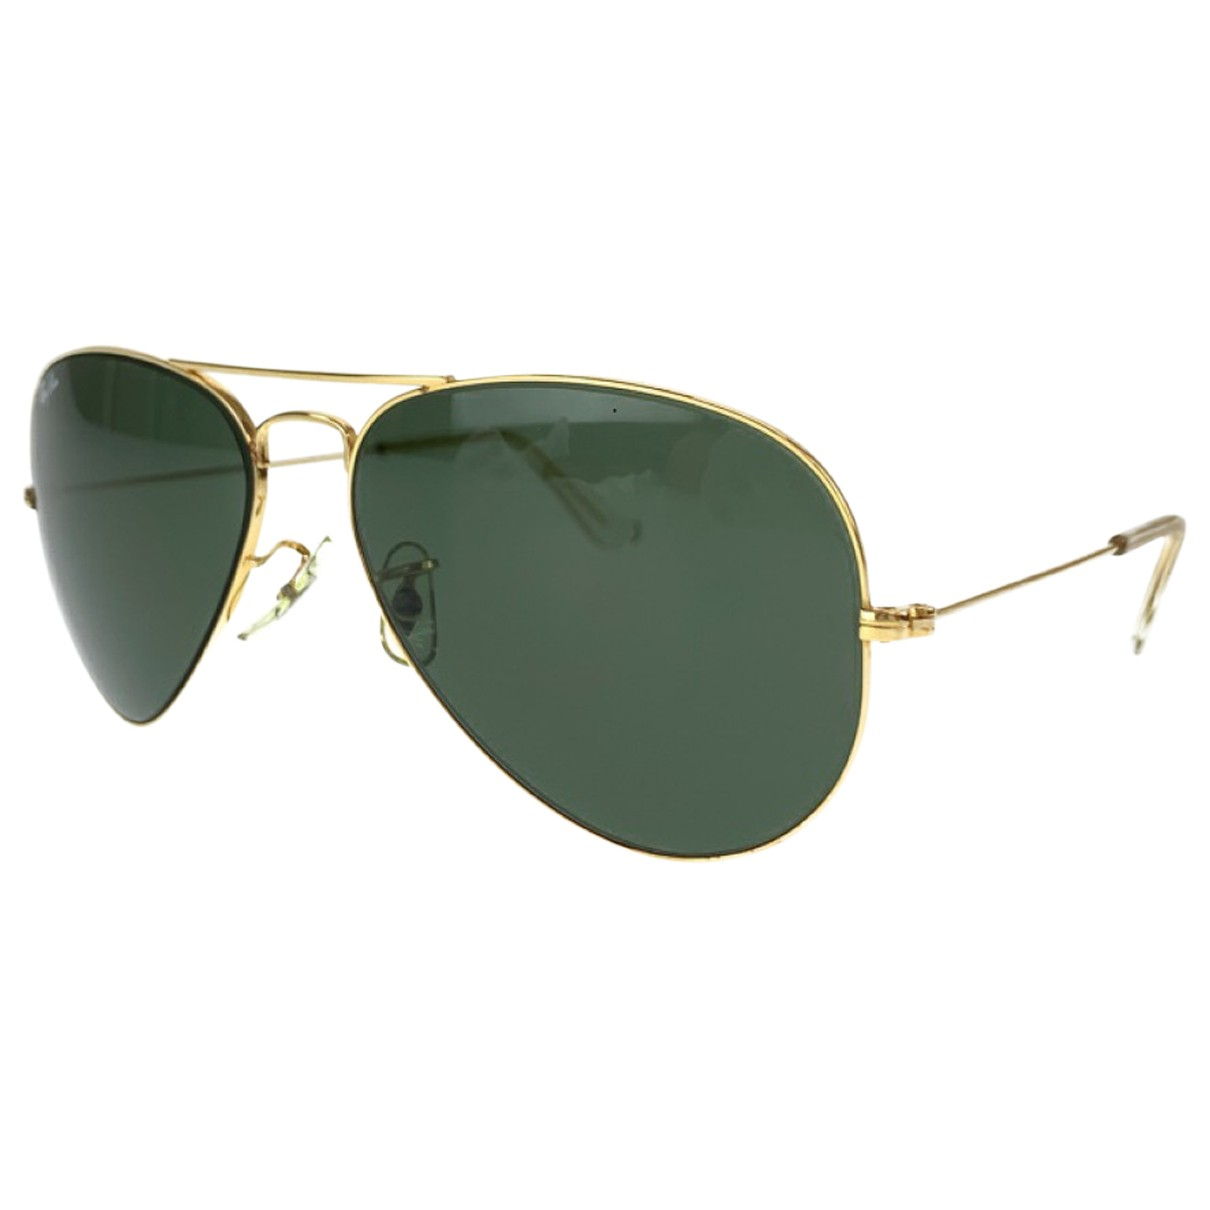 Ray-ban N Metal Sunglasses for Men N